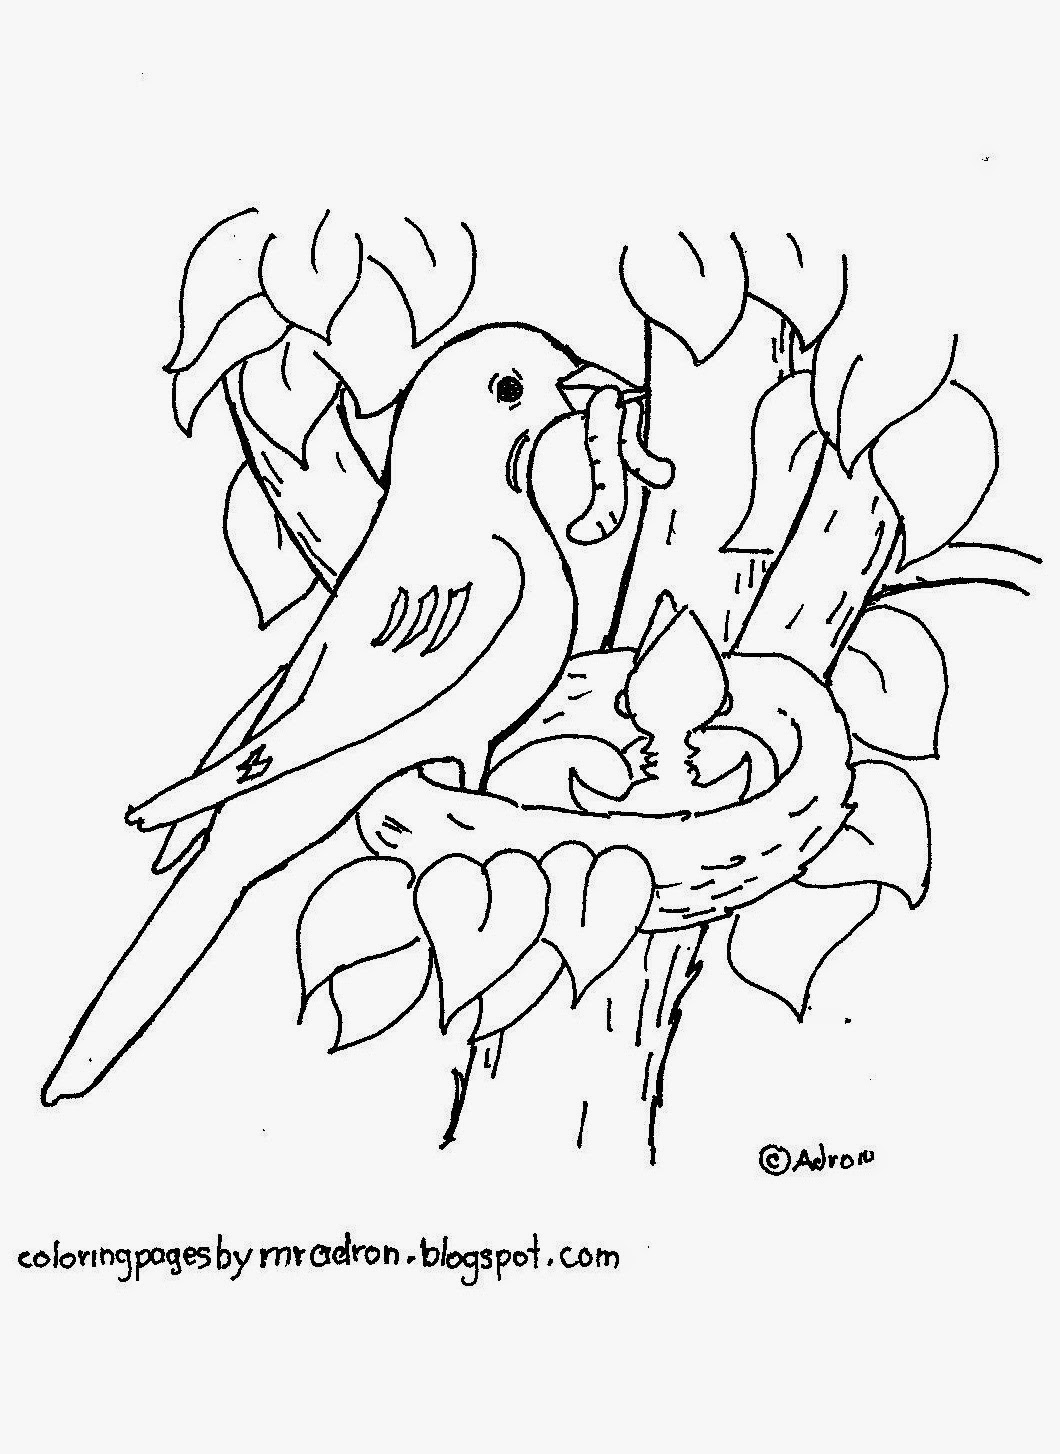 Coloring Pages For Kids By Mr Adron Robin In Nest Free